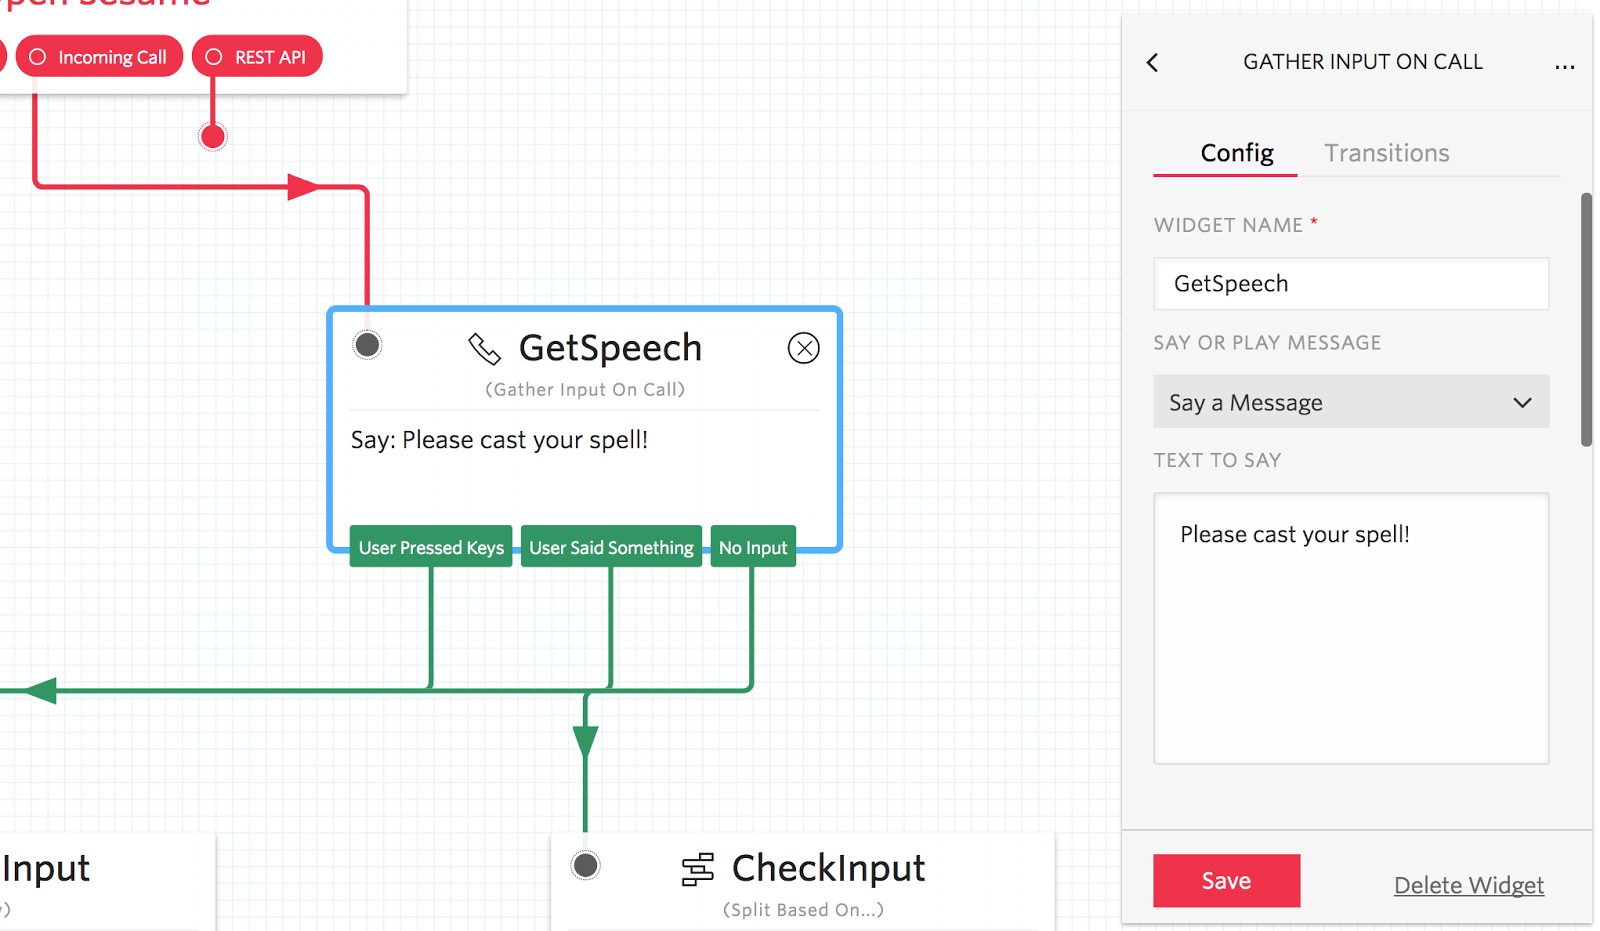 Open Sesame Control A Garage Door With Twilio Studio Sync And Speech Recognition Circuit